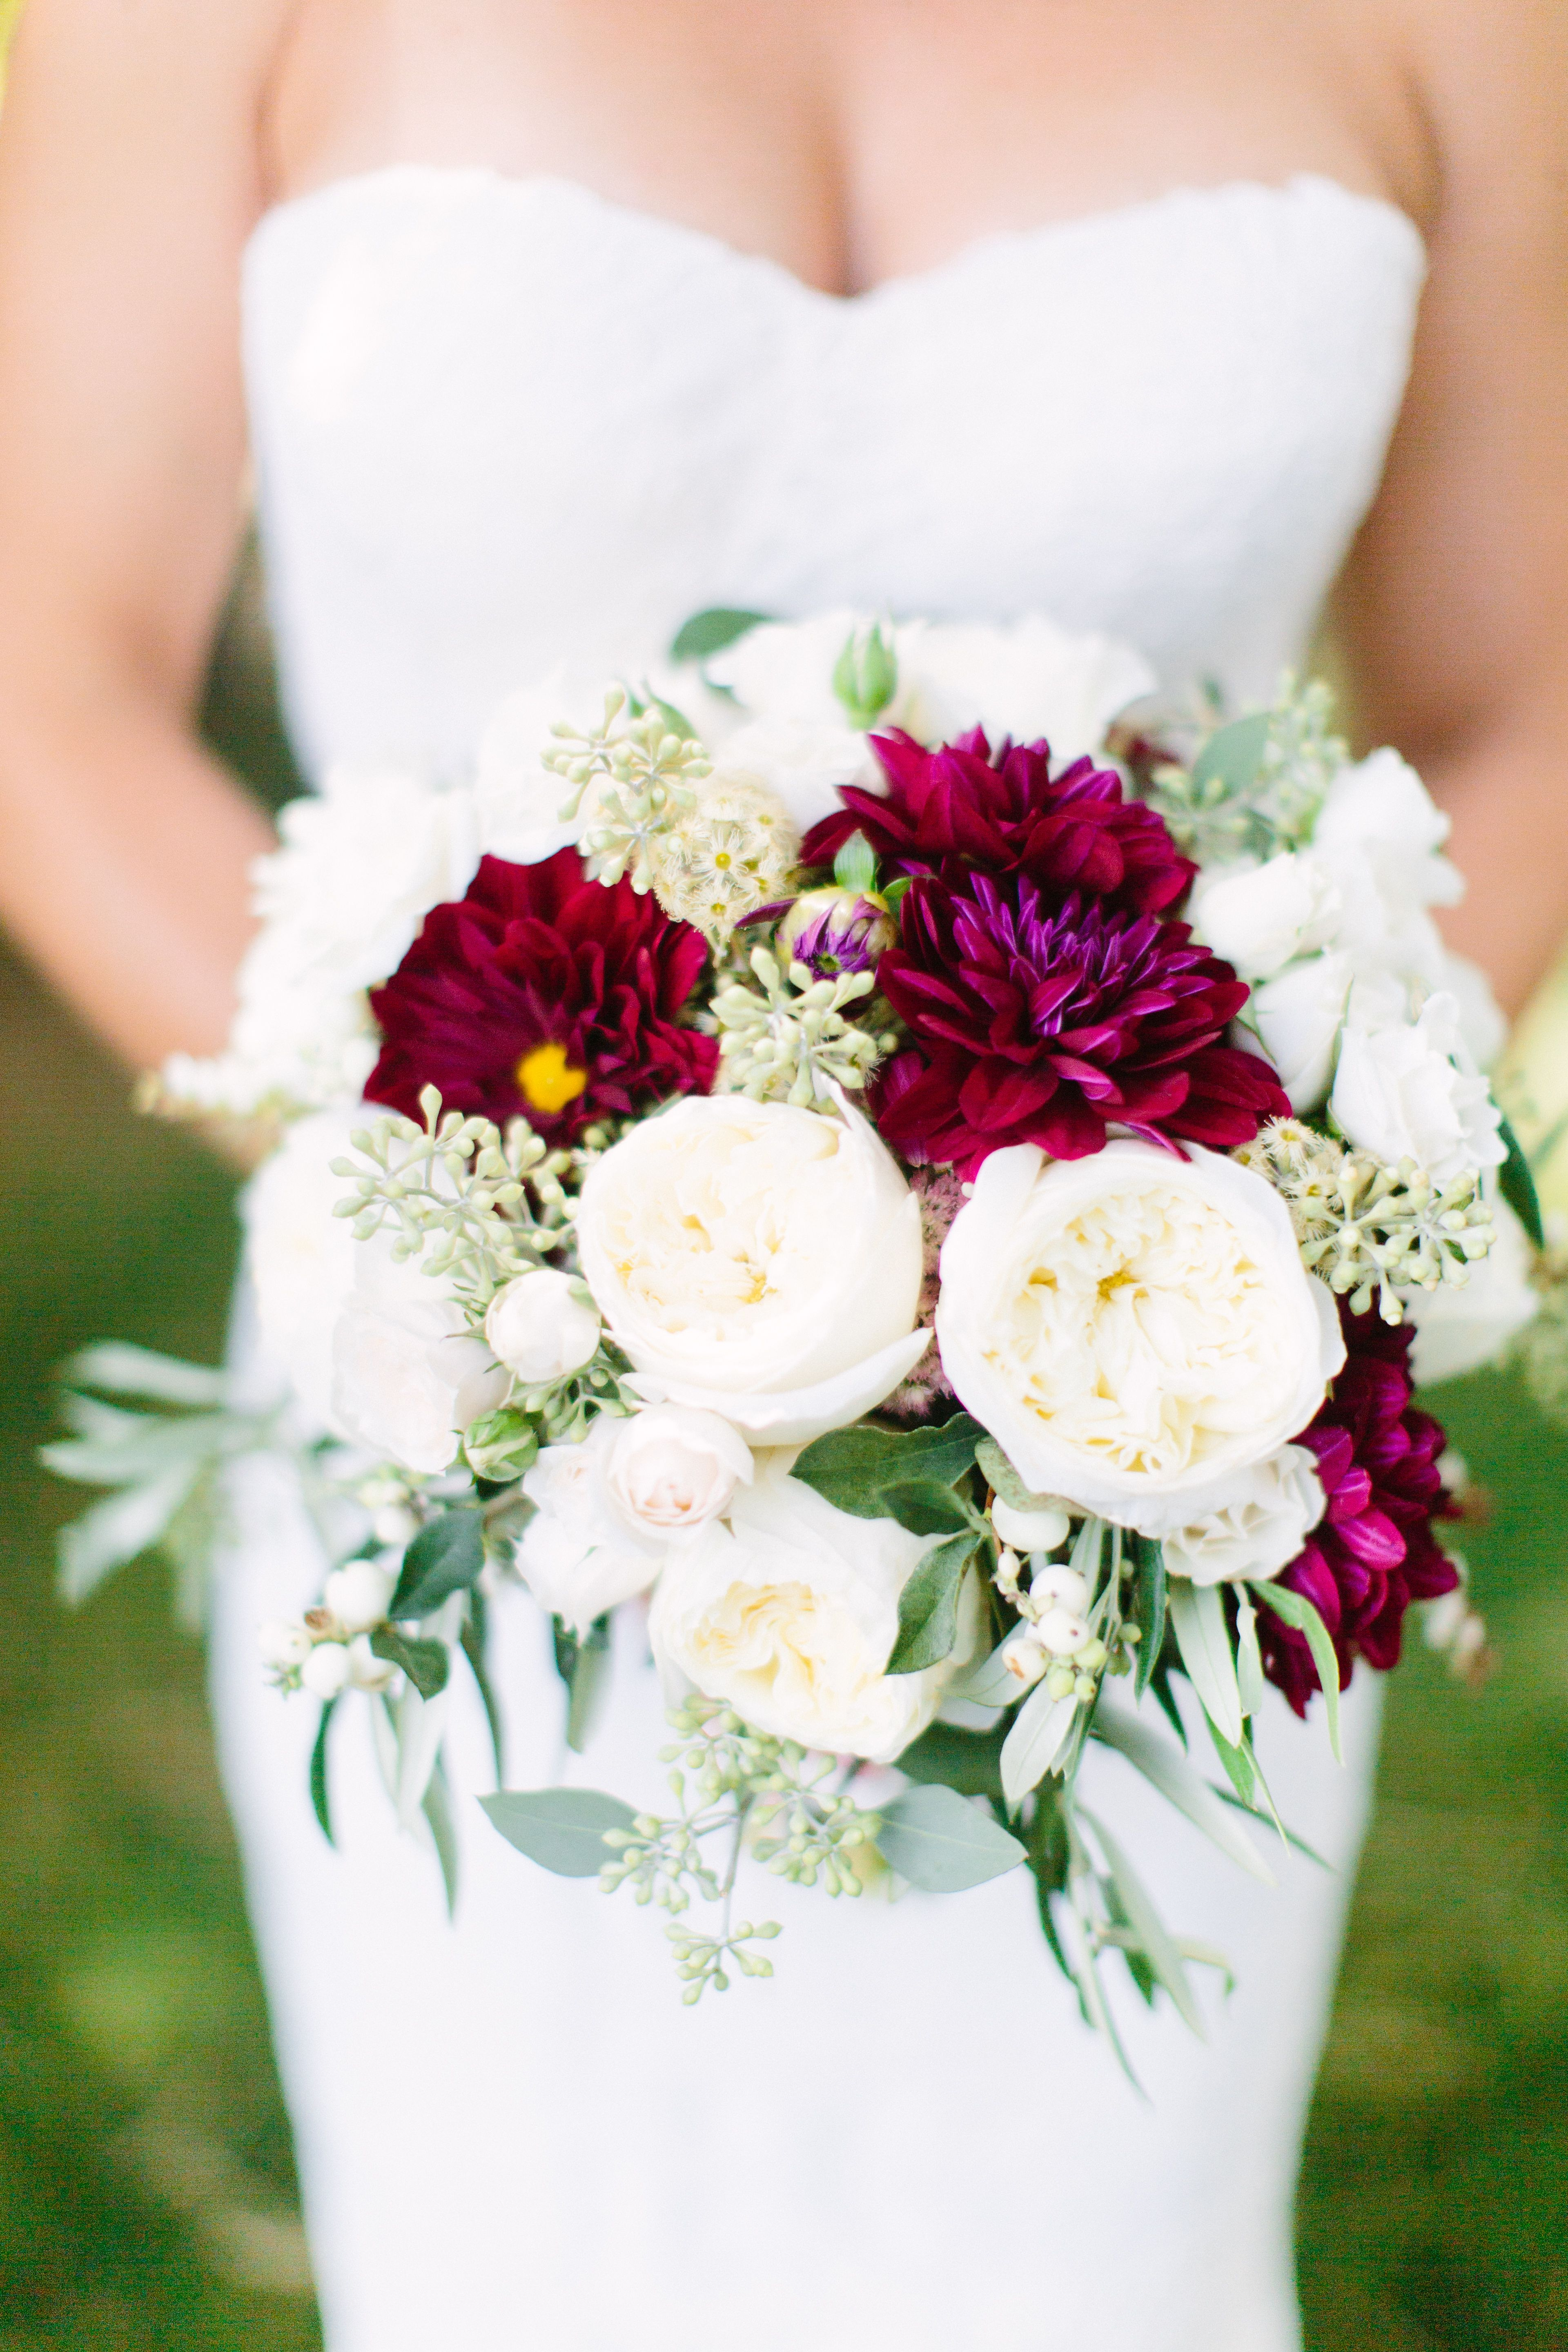 roses, dahlias and peonies in shades of ivory and burgundy